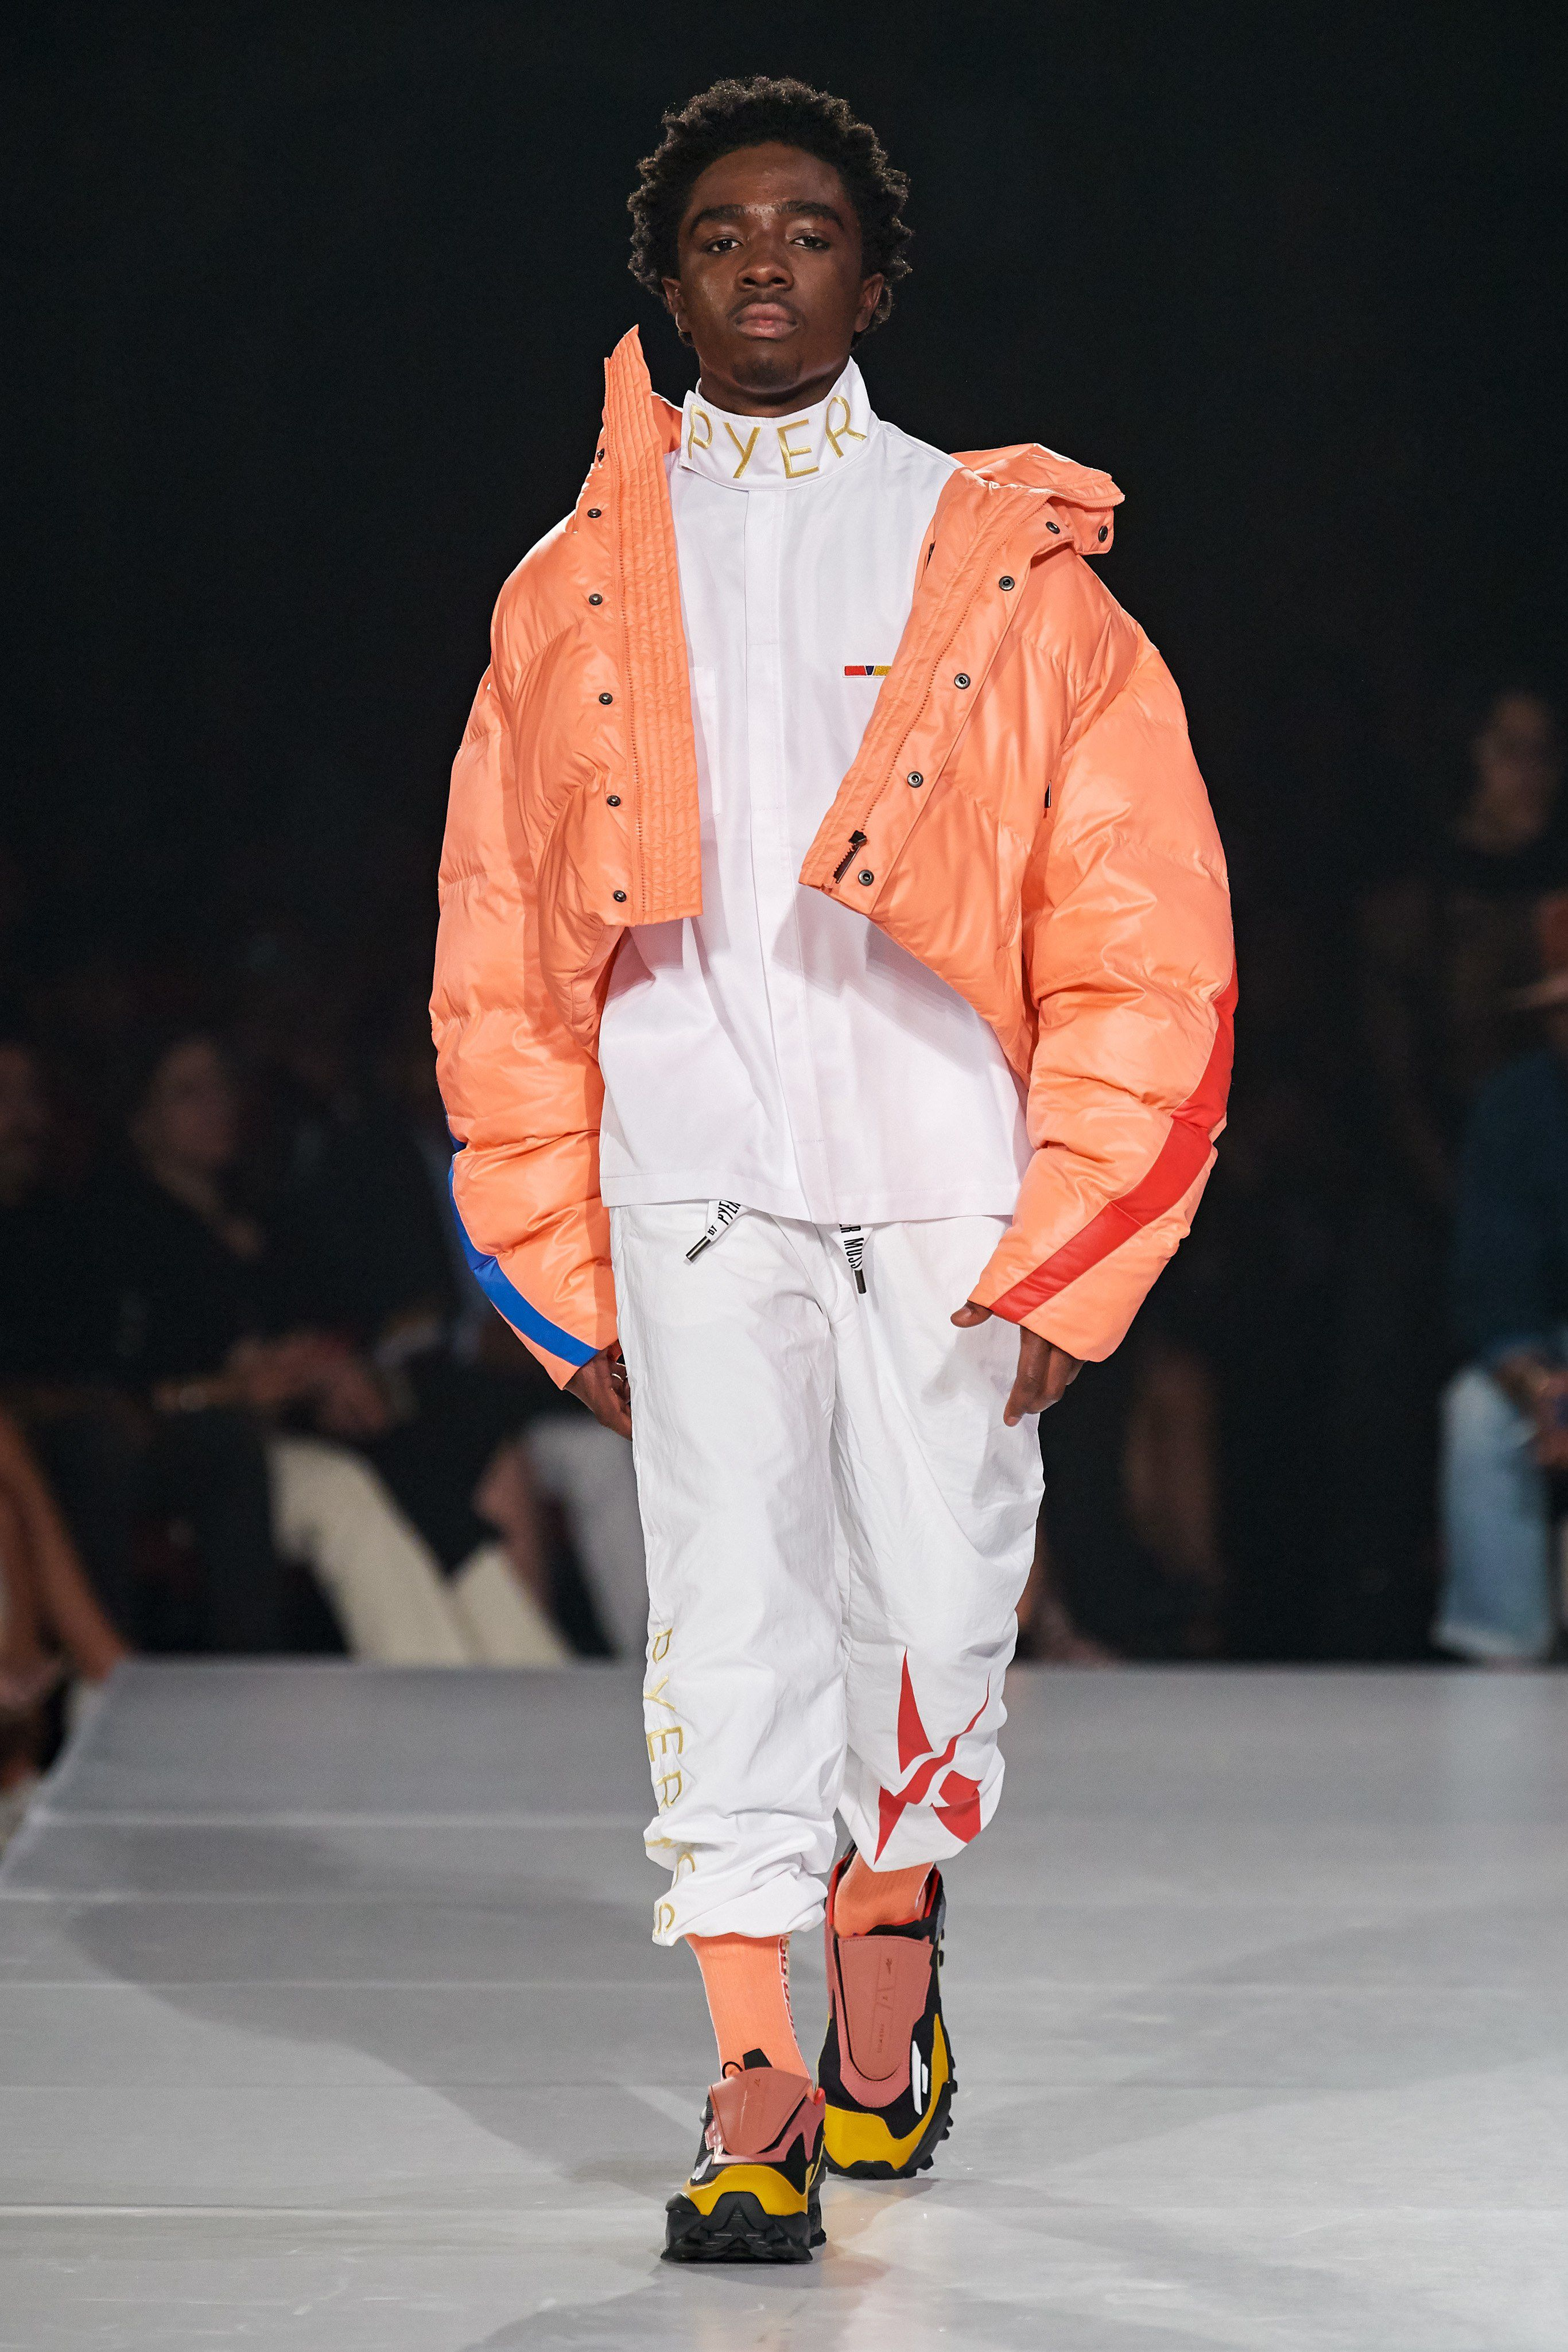 Black Fashion Designers 2020.Pyer Moss Spring 2020 Ready To Wear Fashion Show Collection